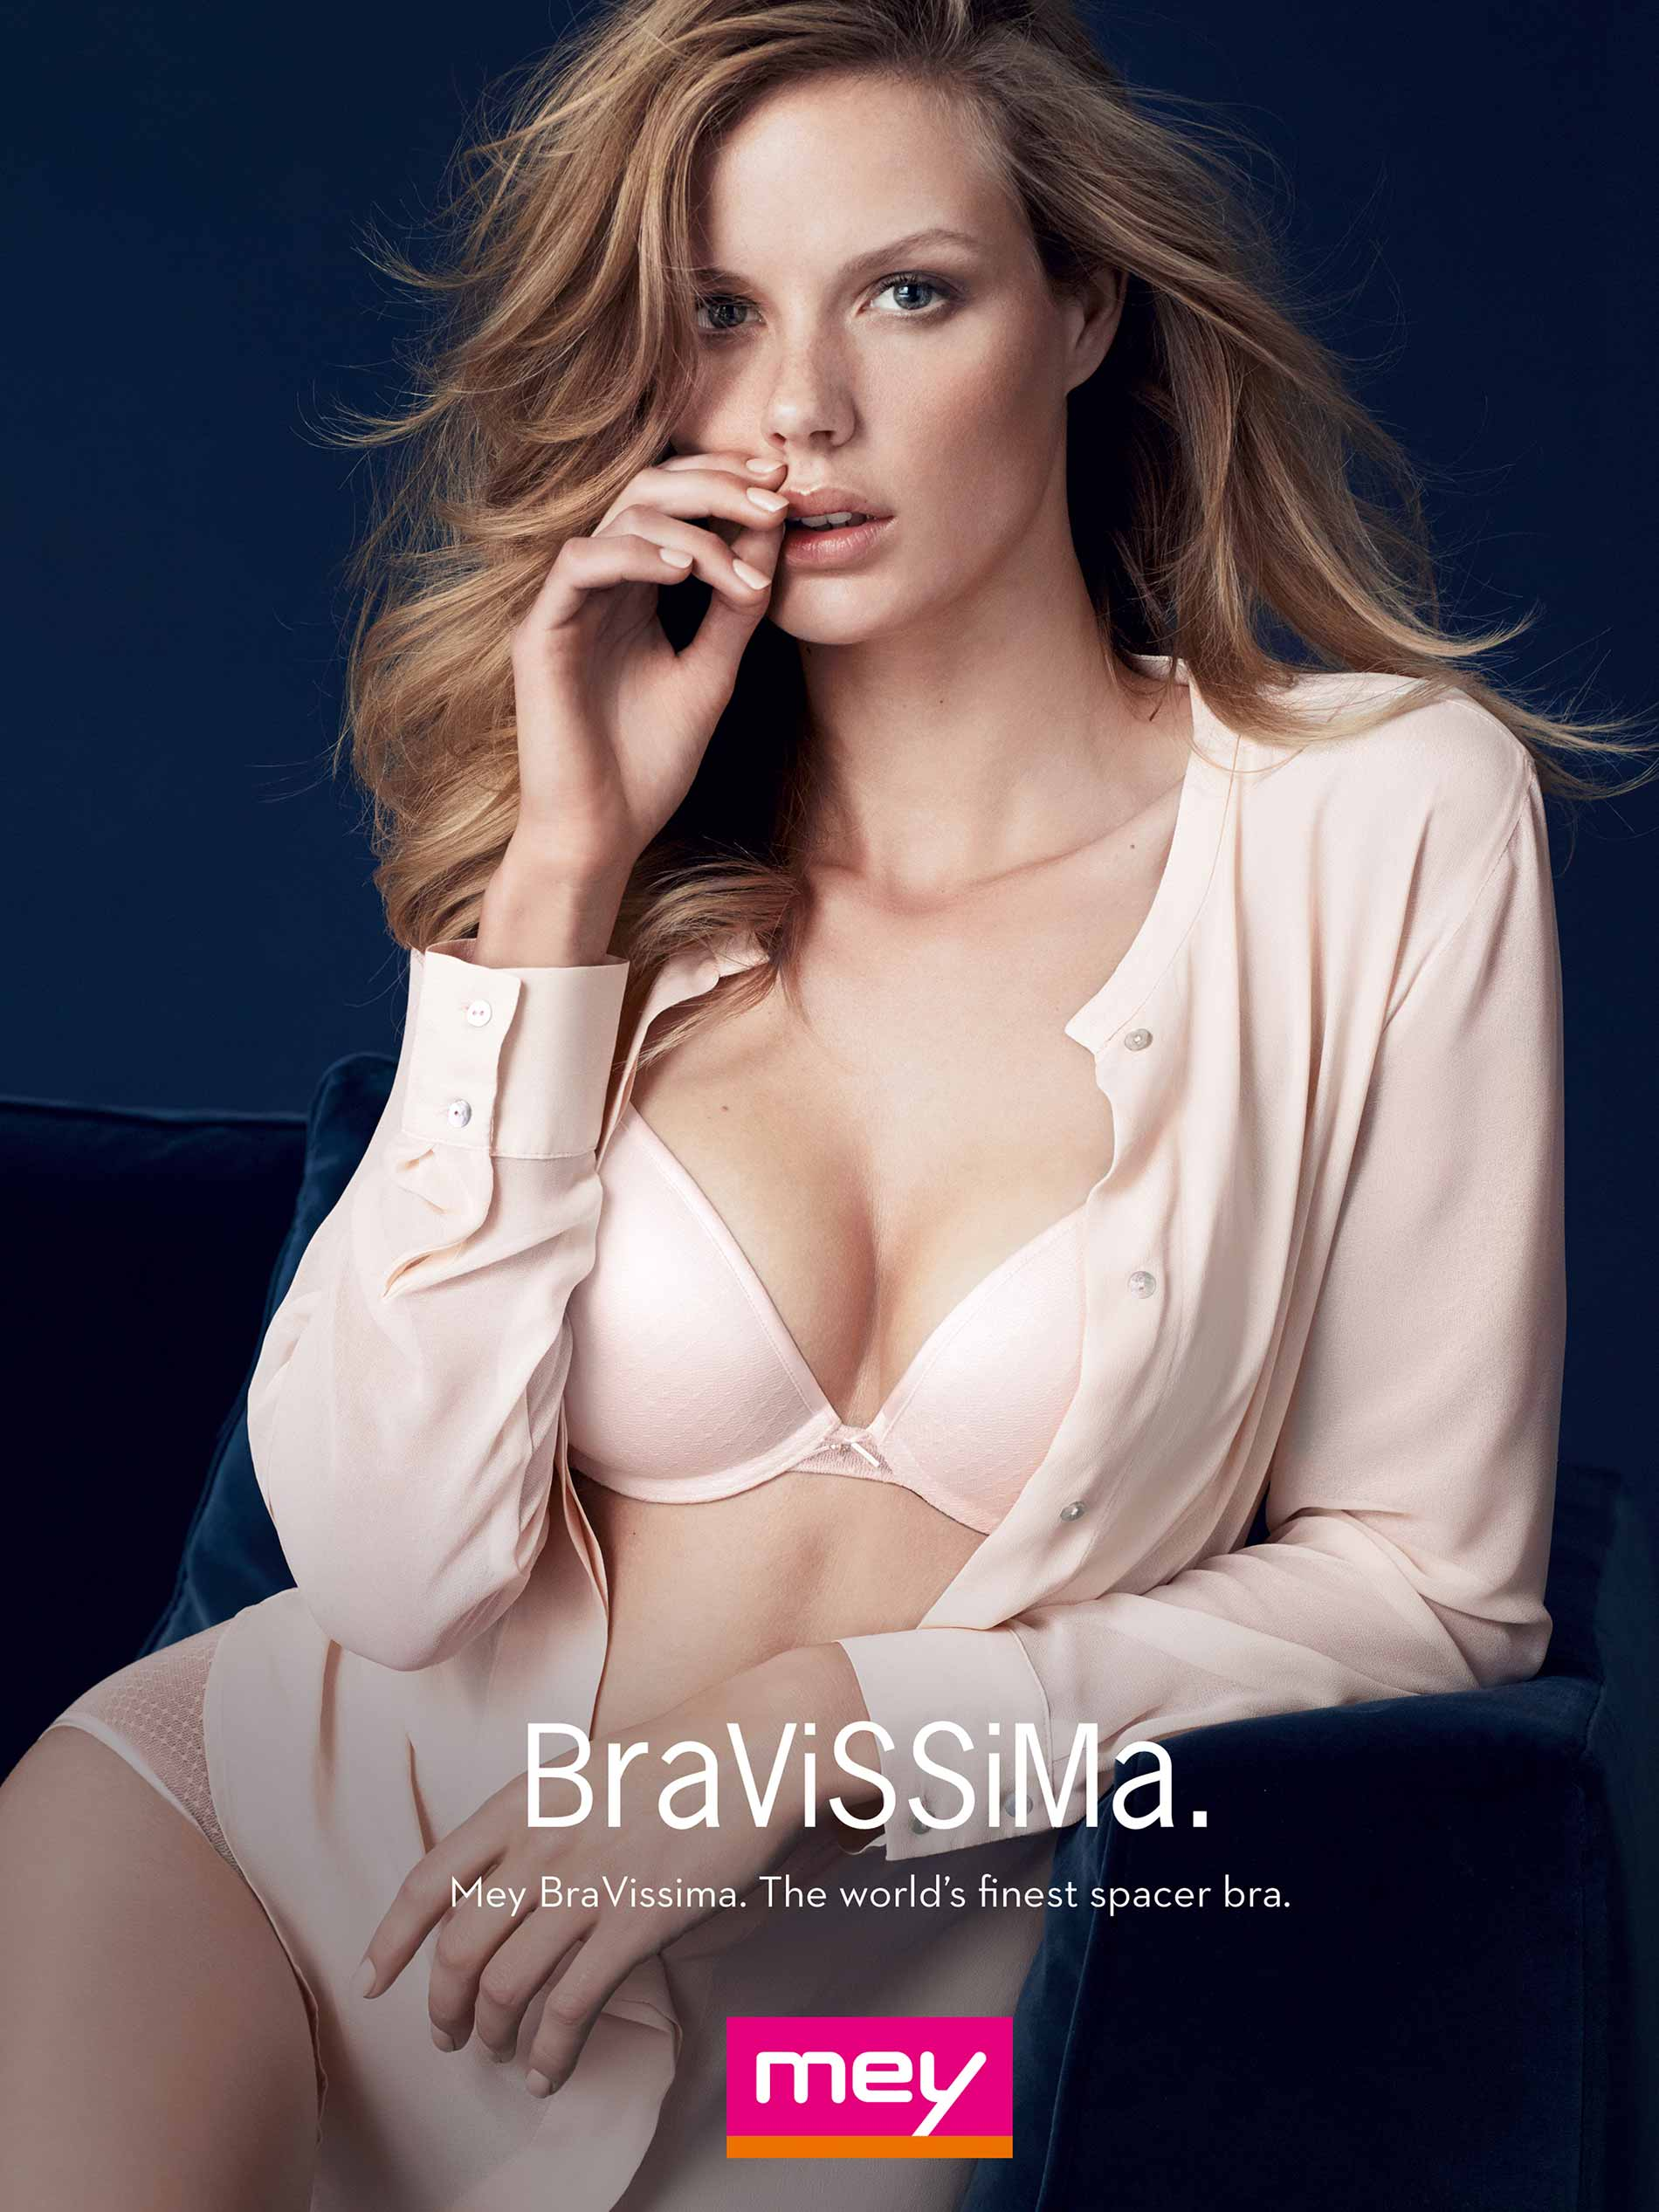 advertisement for the Blouse Spacer: BraVissima – the world's best spacer bra, female model in a light pink blouse and light pink spacer bra | mey®